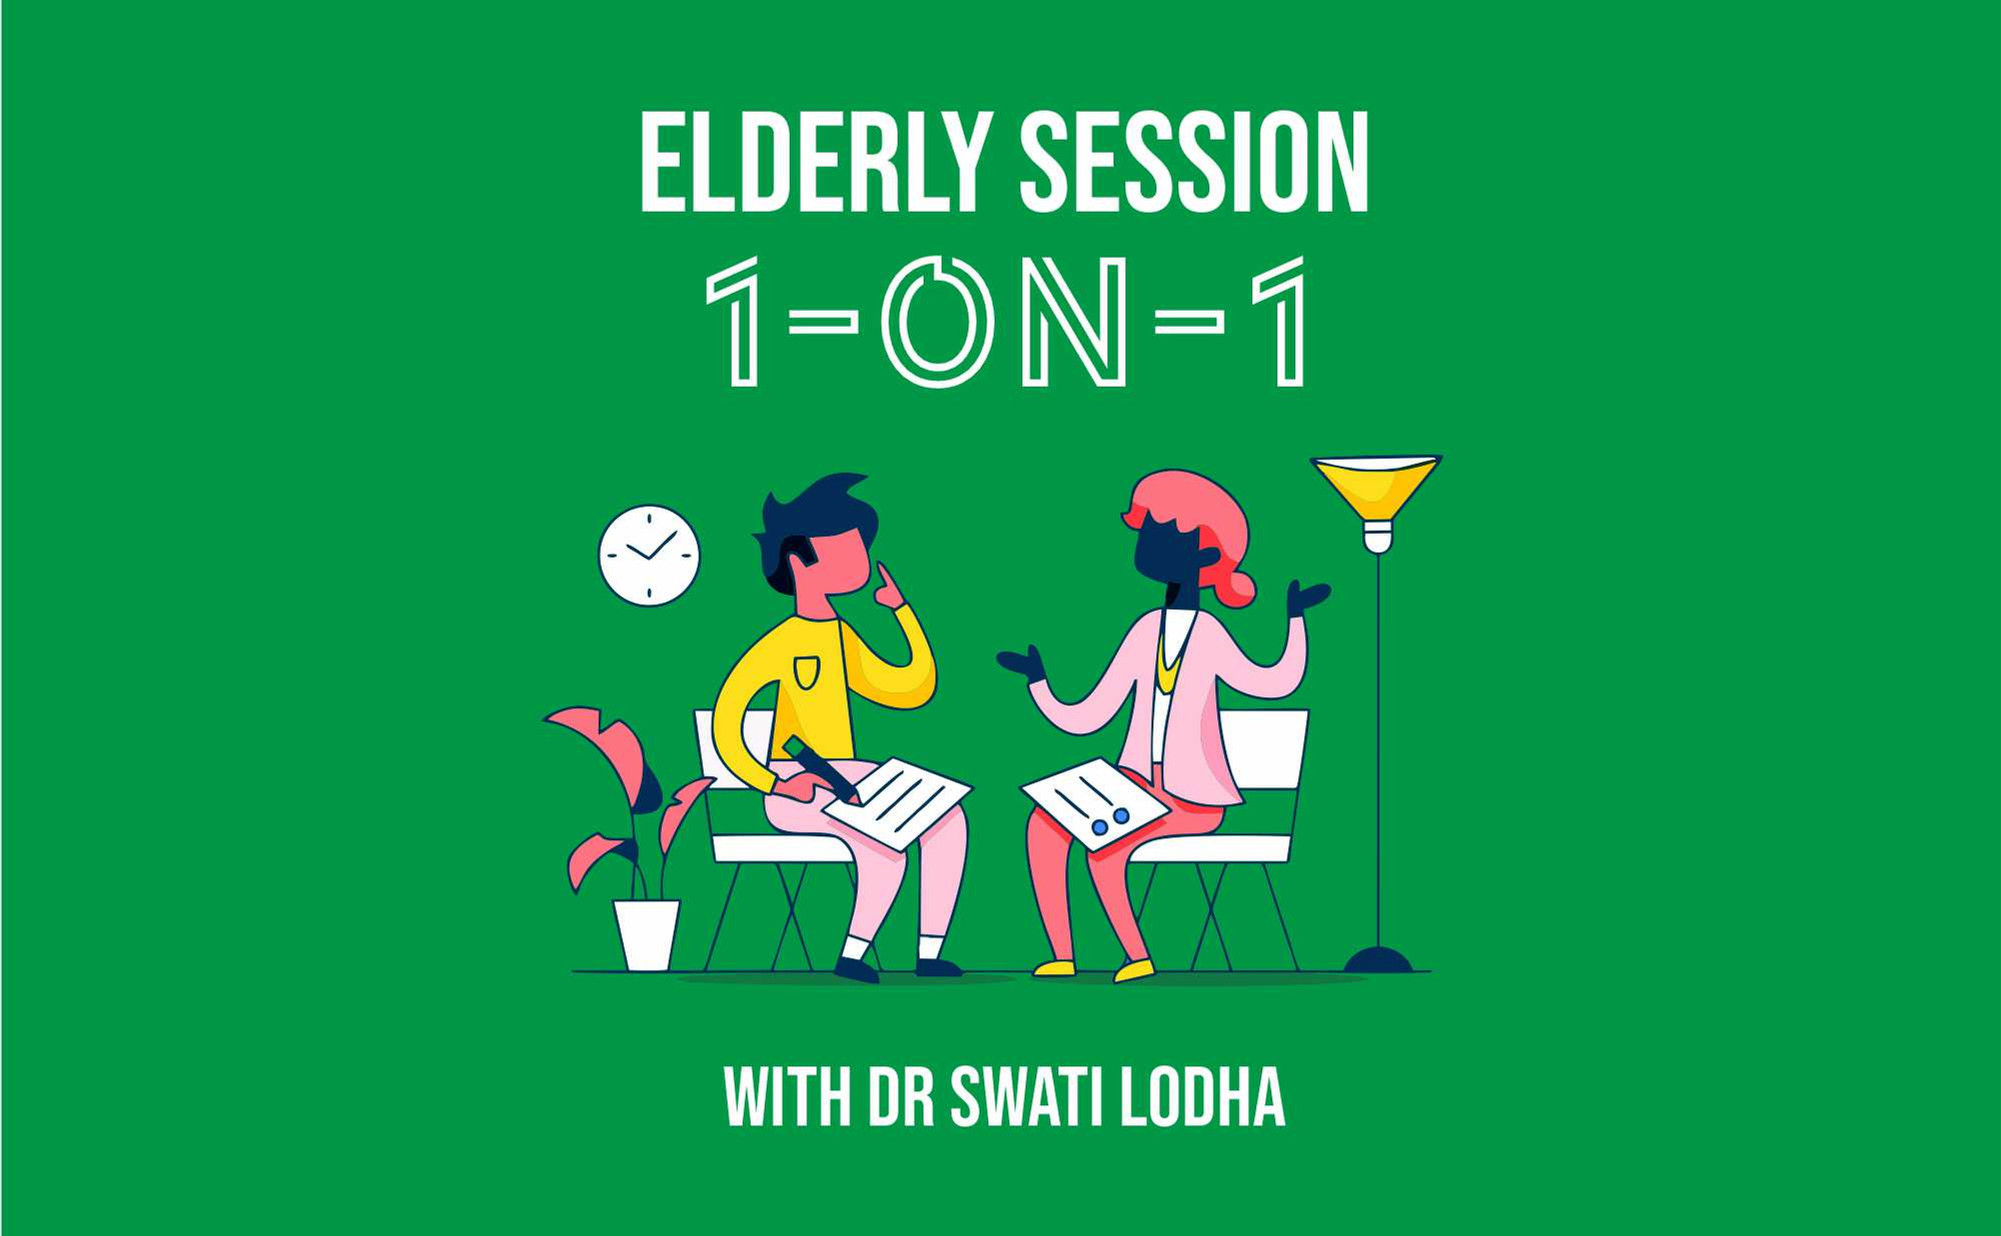 1-ON-1 Session with Elderly